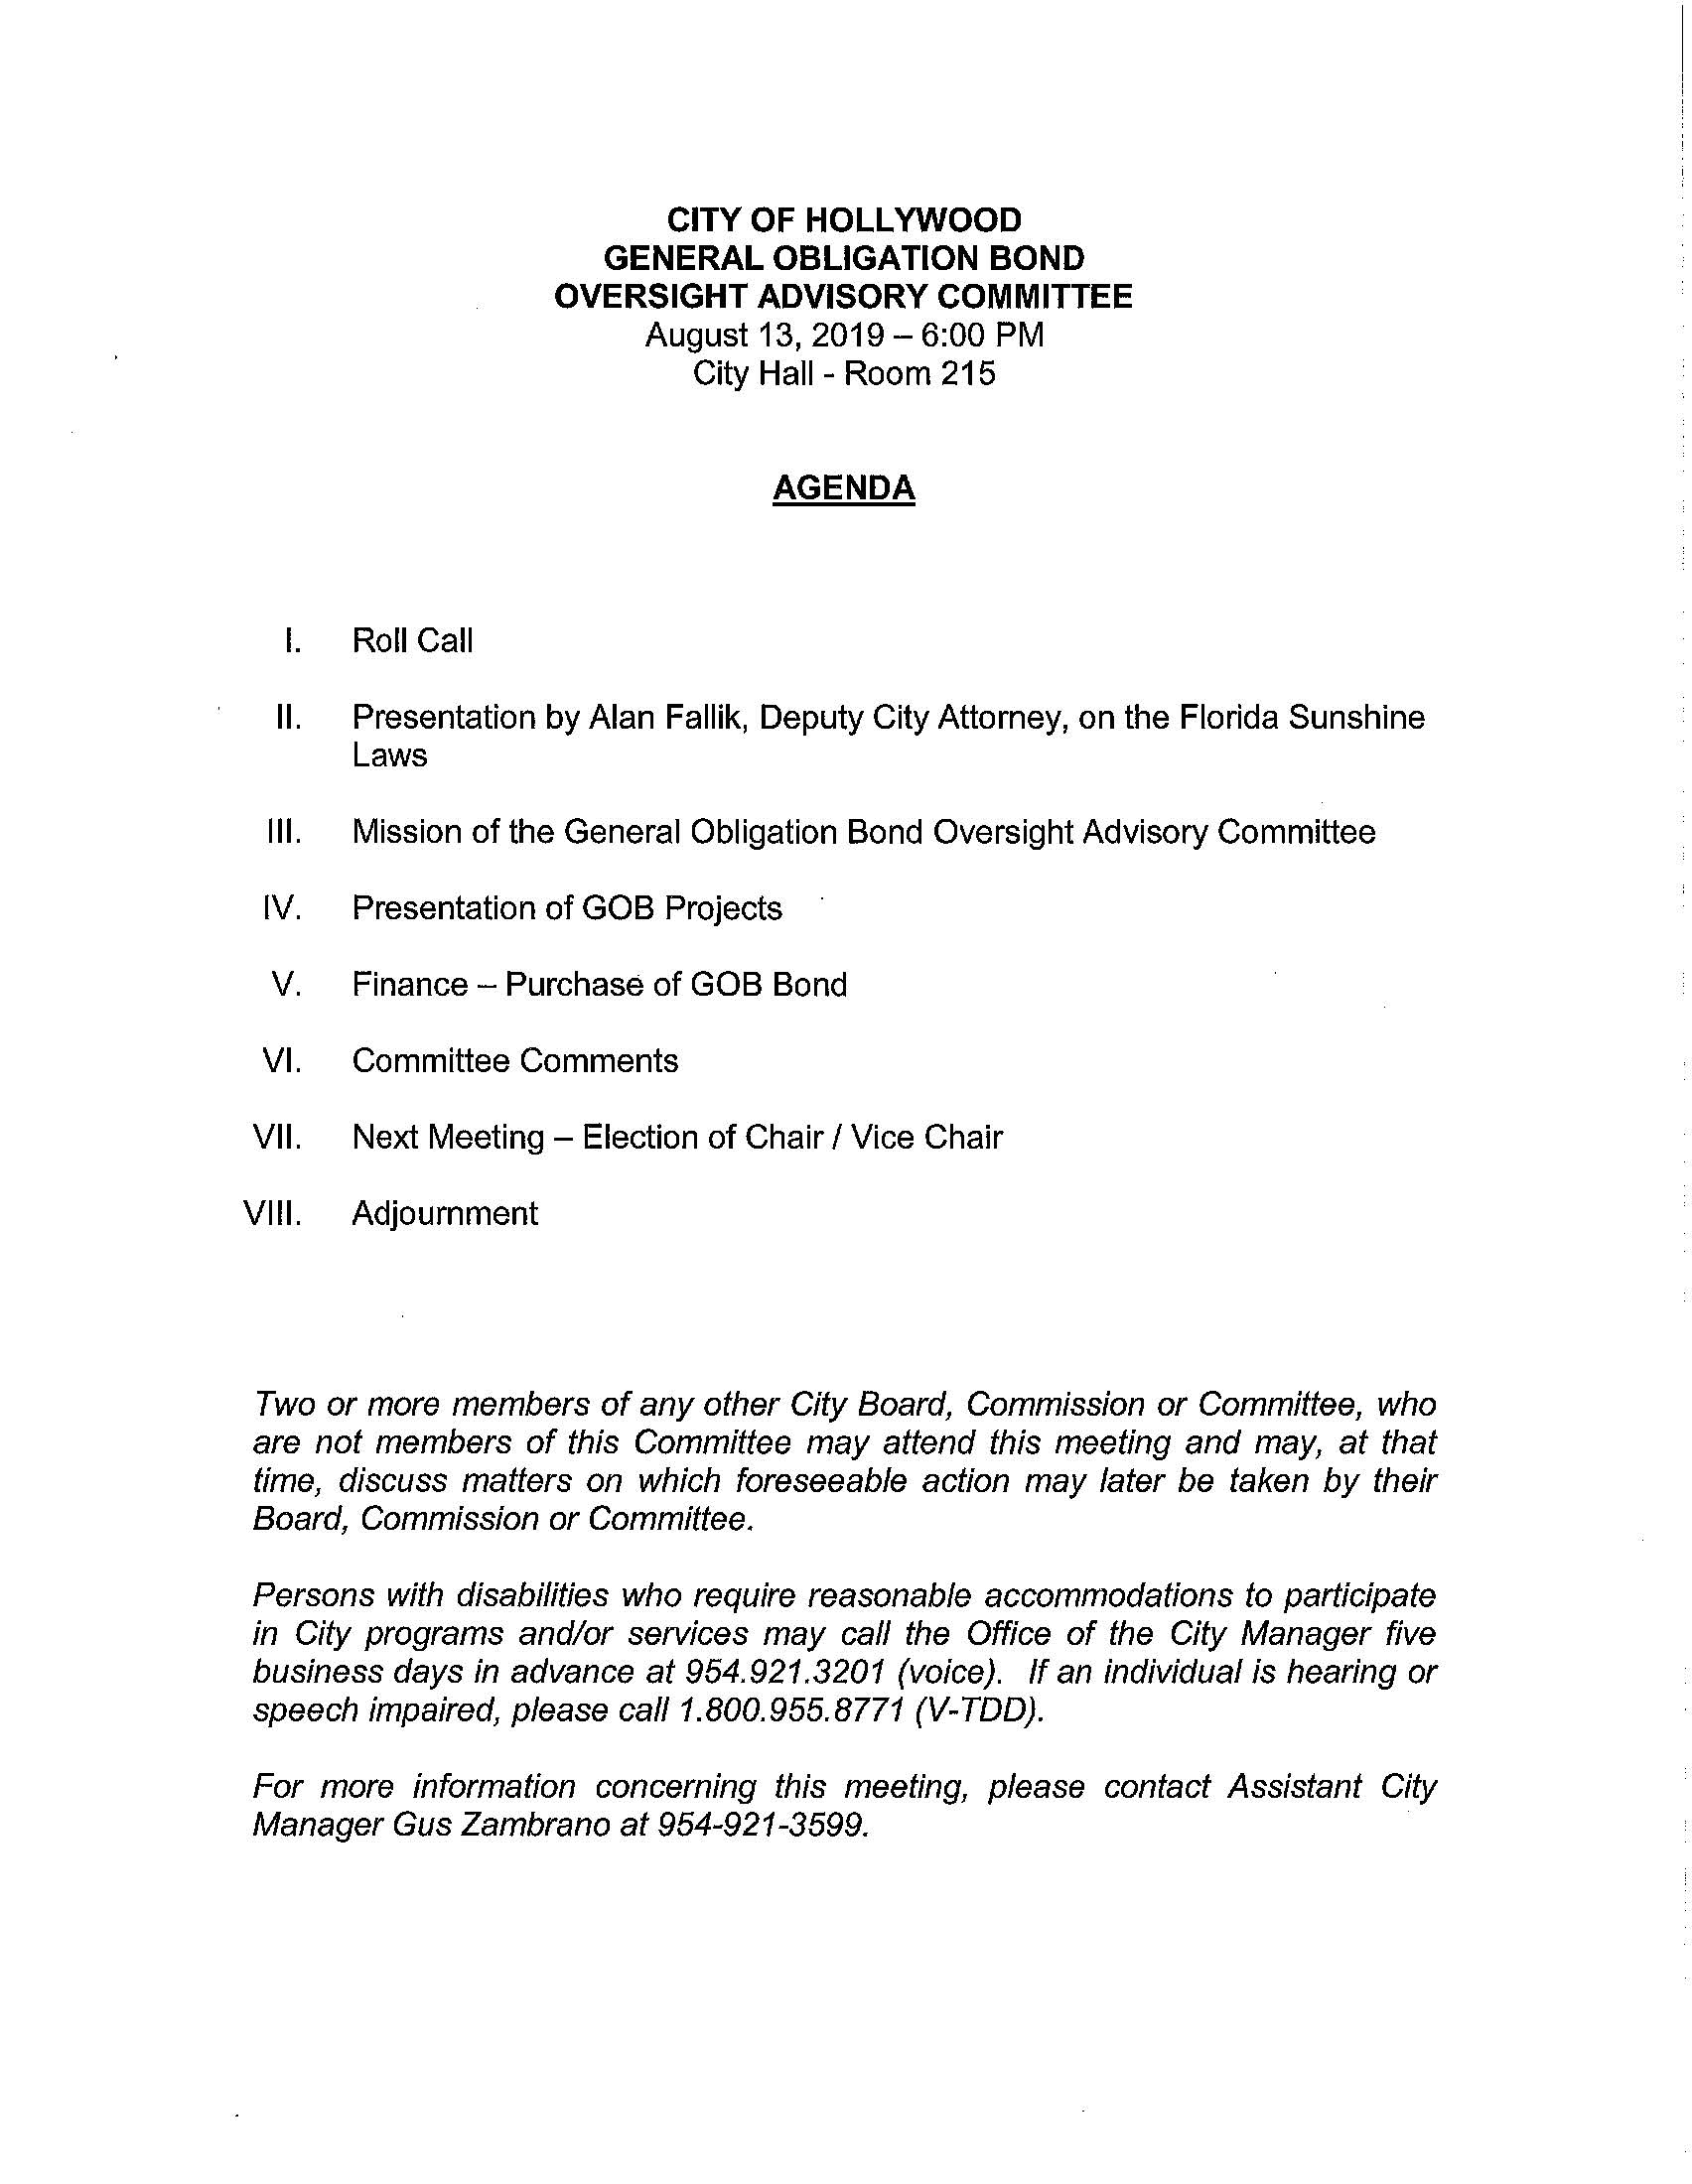 August 13, 2019 General Obligation Bond Oversight Advisory Committee Meeting Agenda